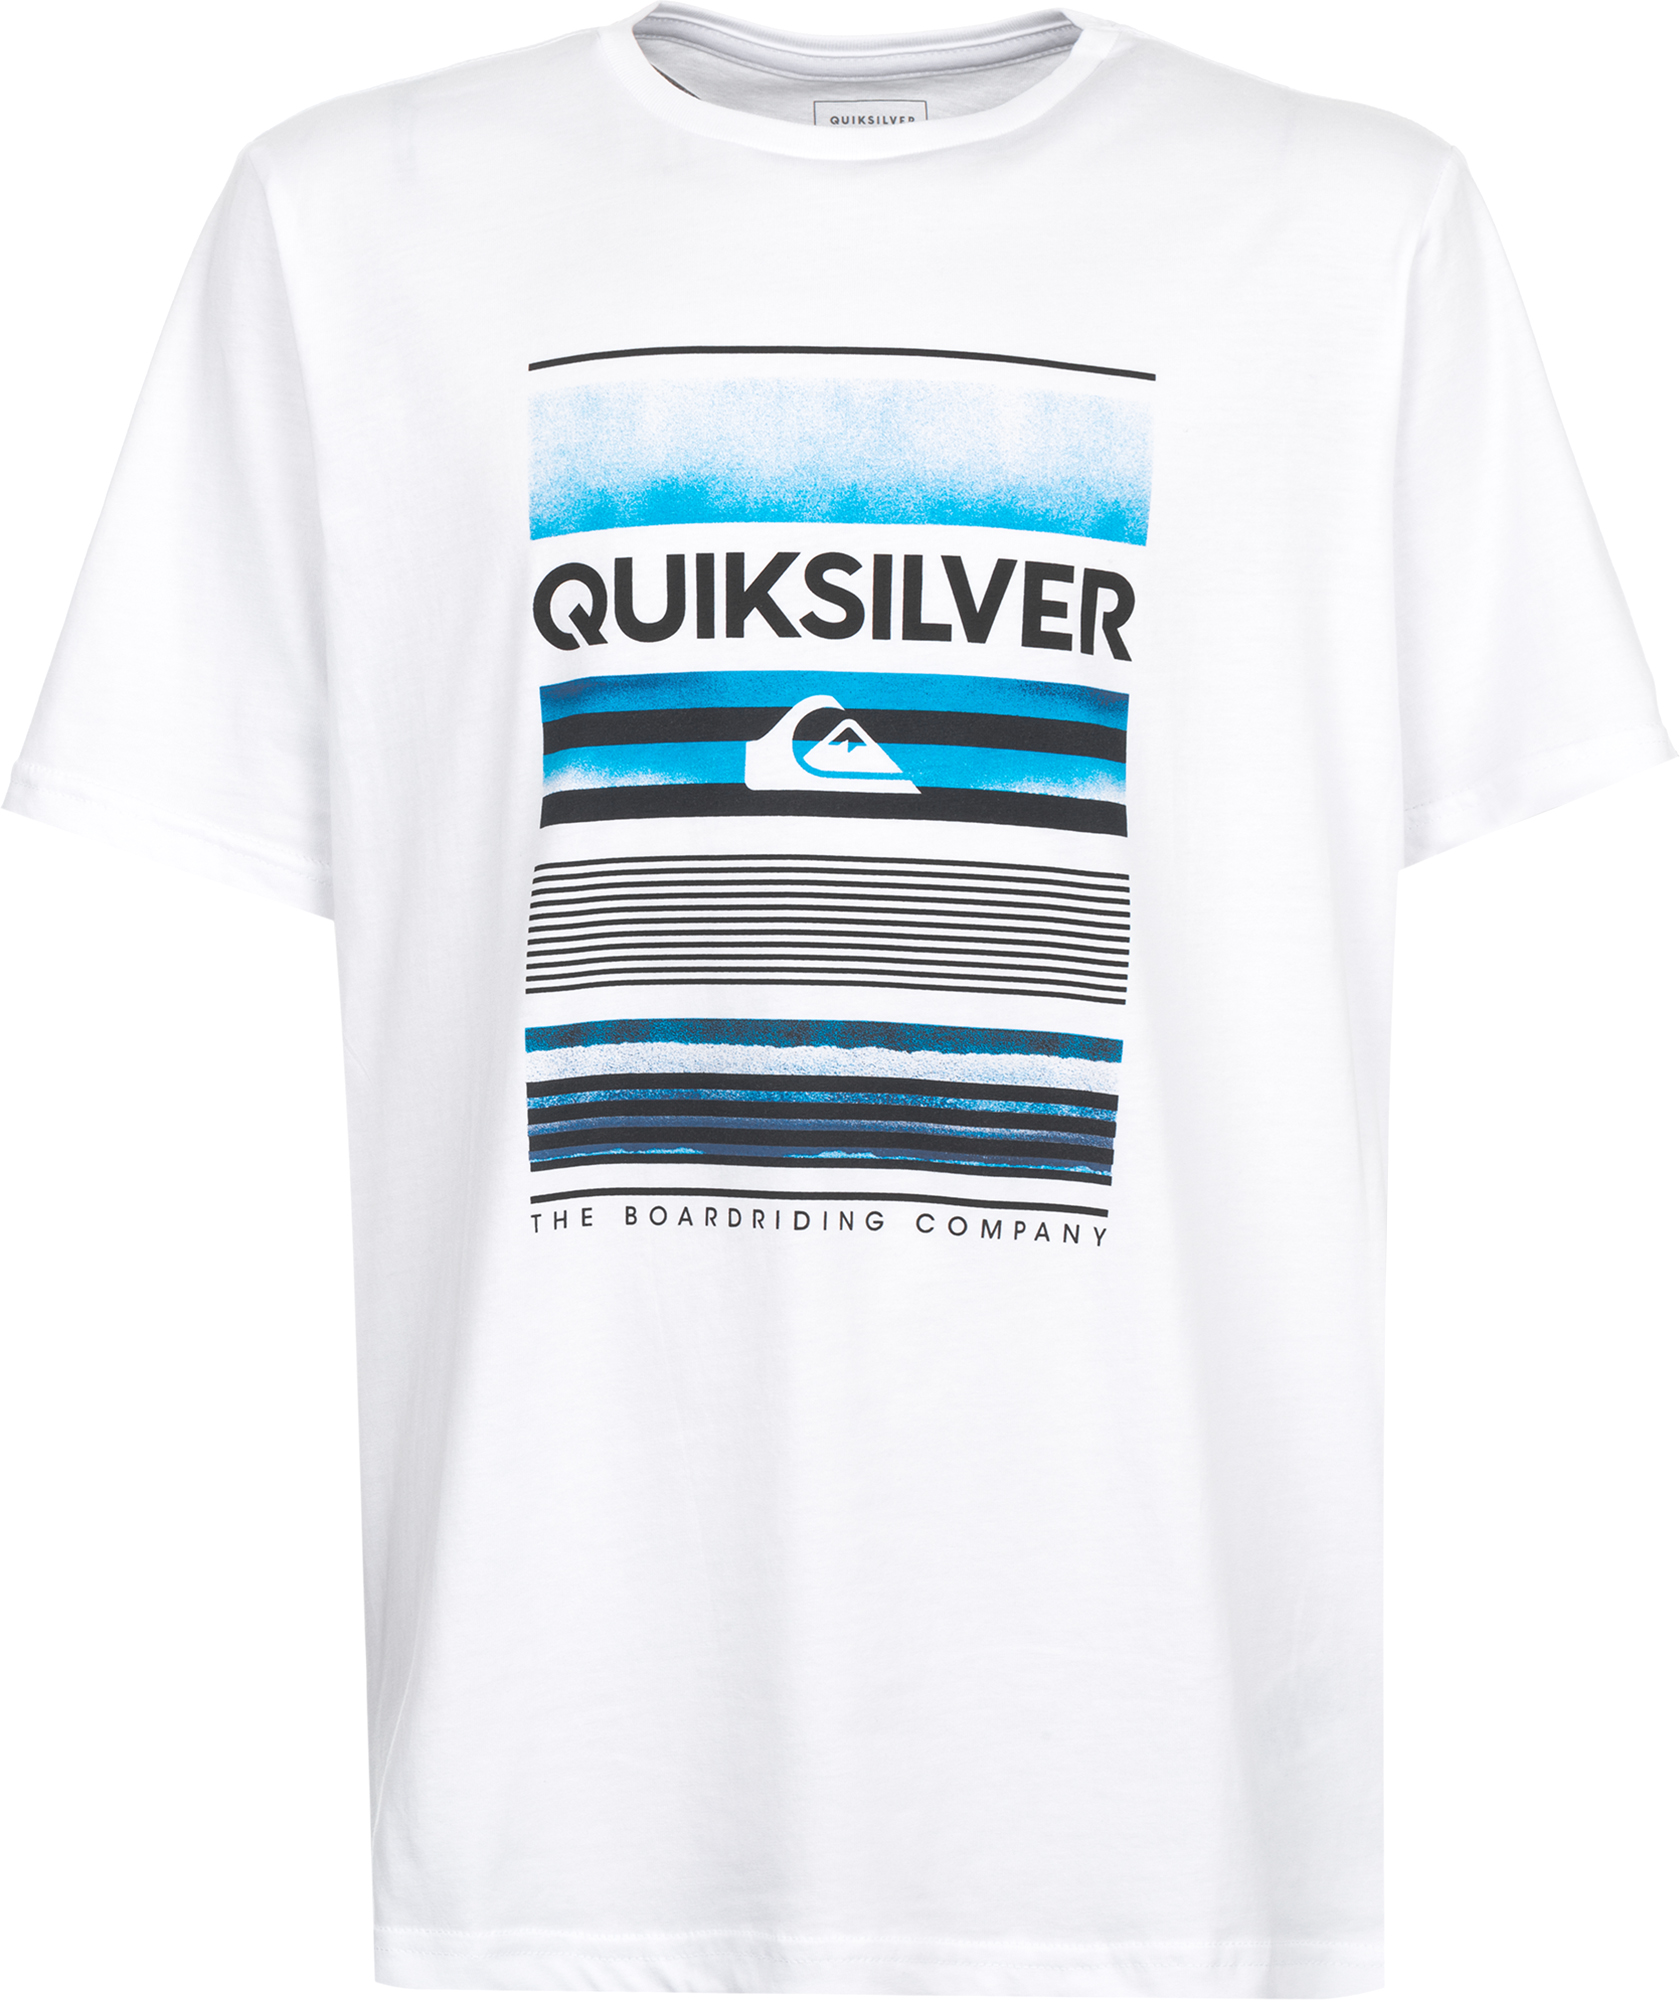 Quiksilver Футболка для мальчиков Quiksilver Flaxton, размер 164-170 quiksilver штаны прямые детские quiksilver thick wood baby i pant blue salted